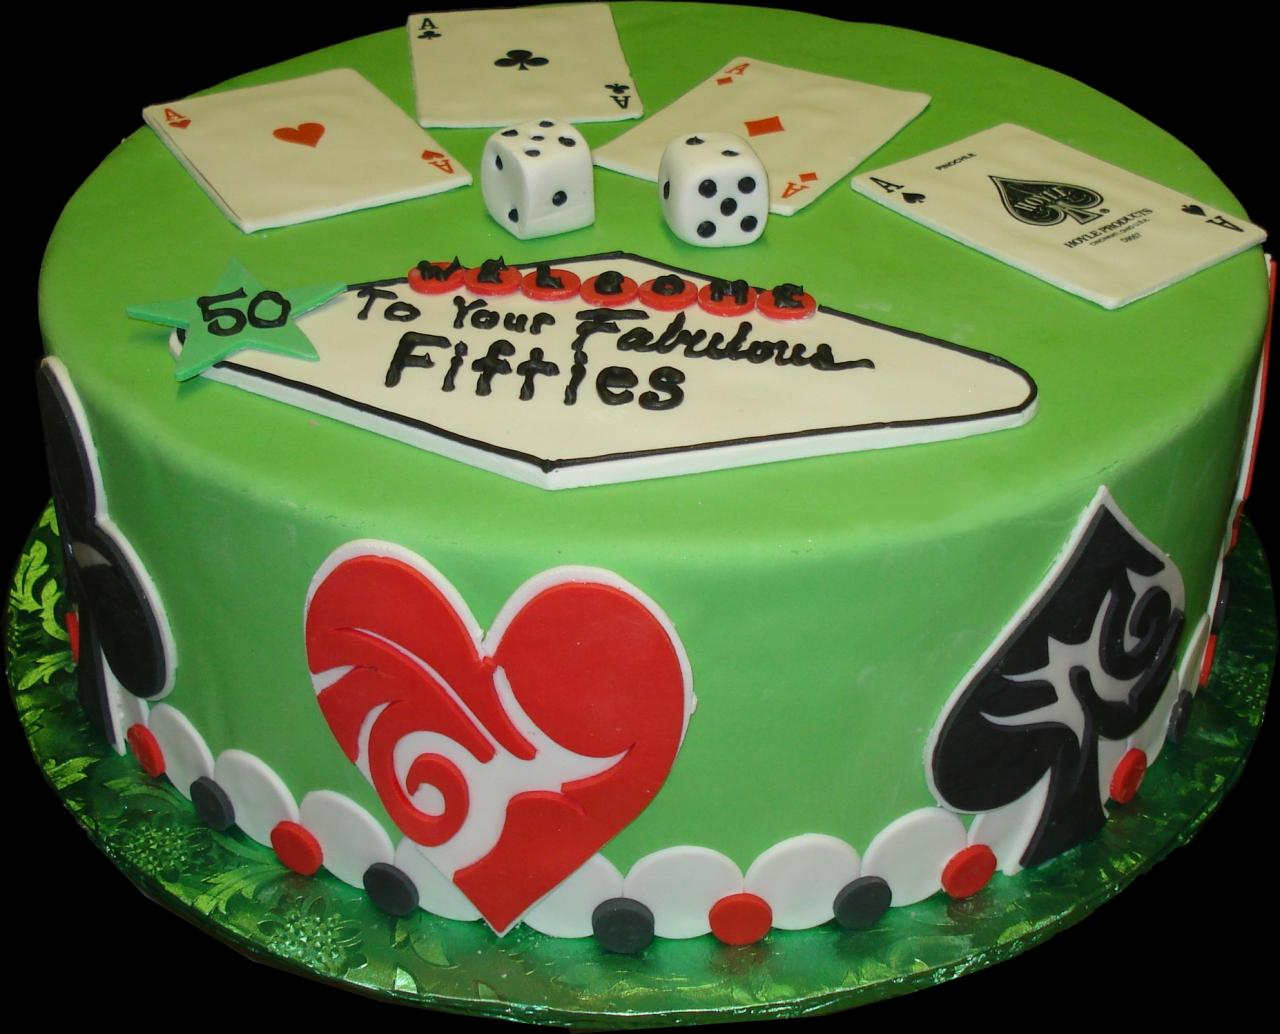 Fabulous 50s Birthday Cake Green Buttercream Iced Round Decorated In A Las Vegas